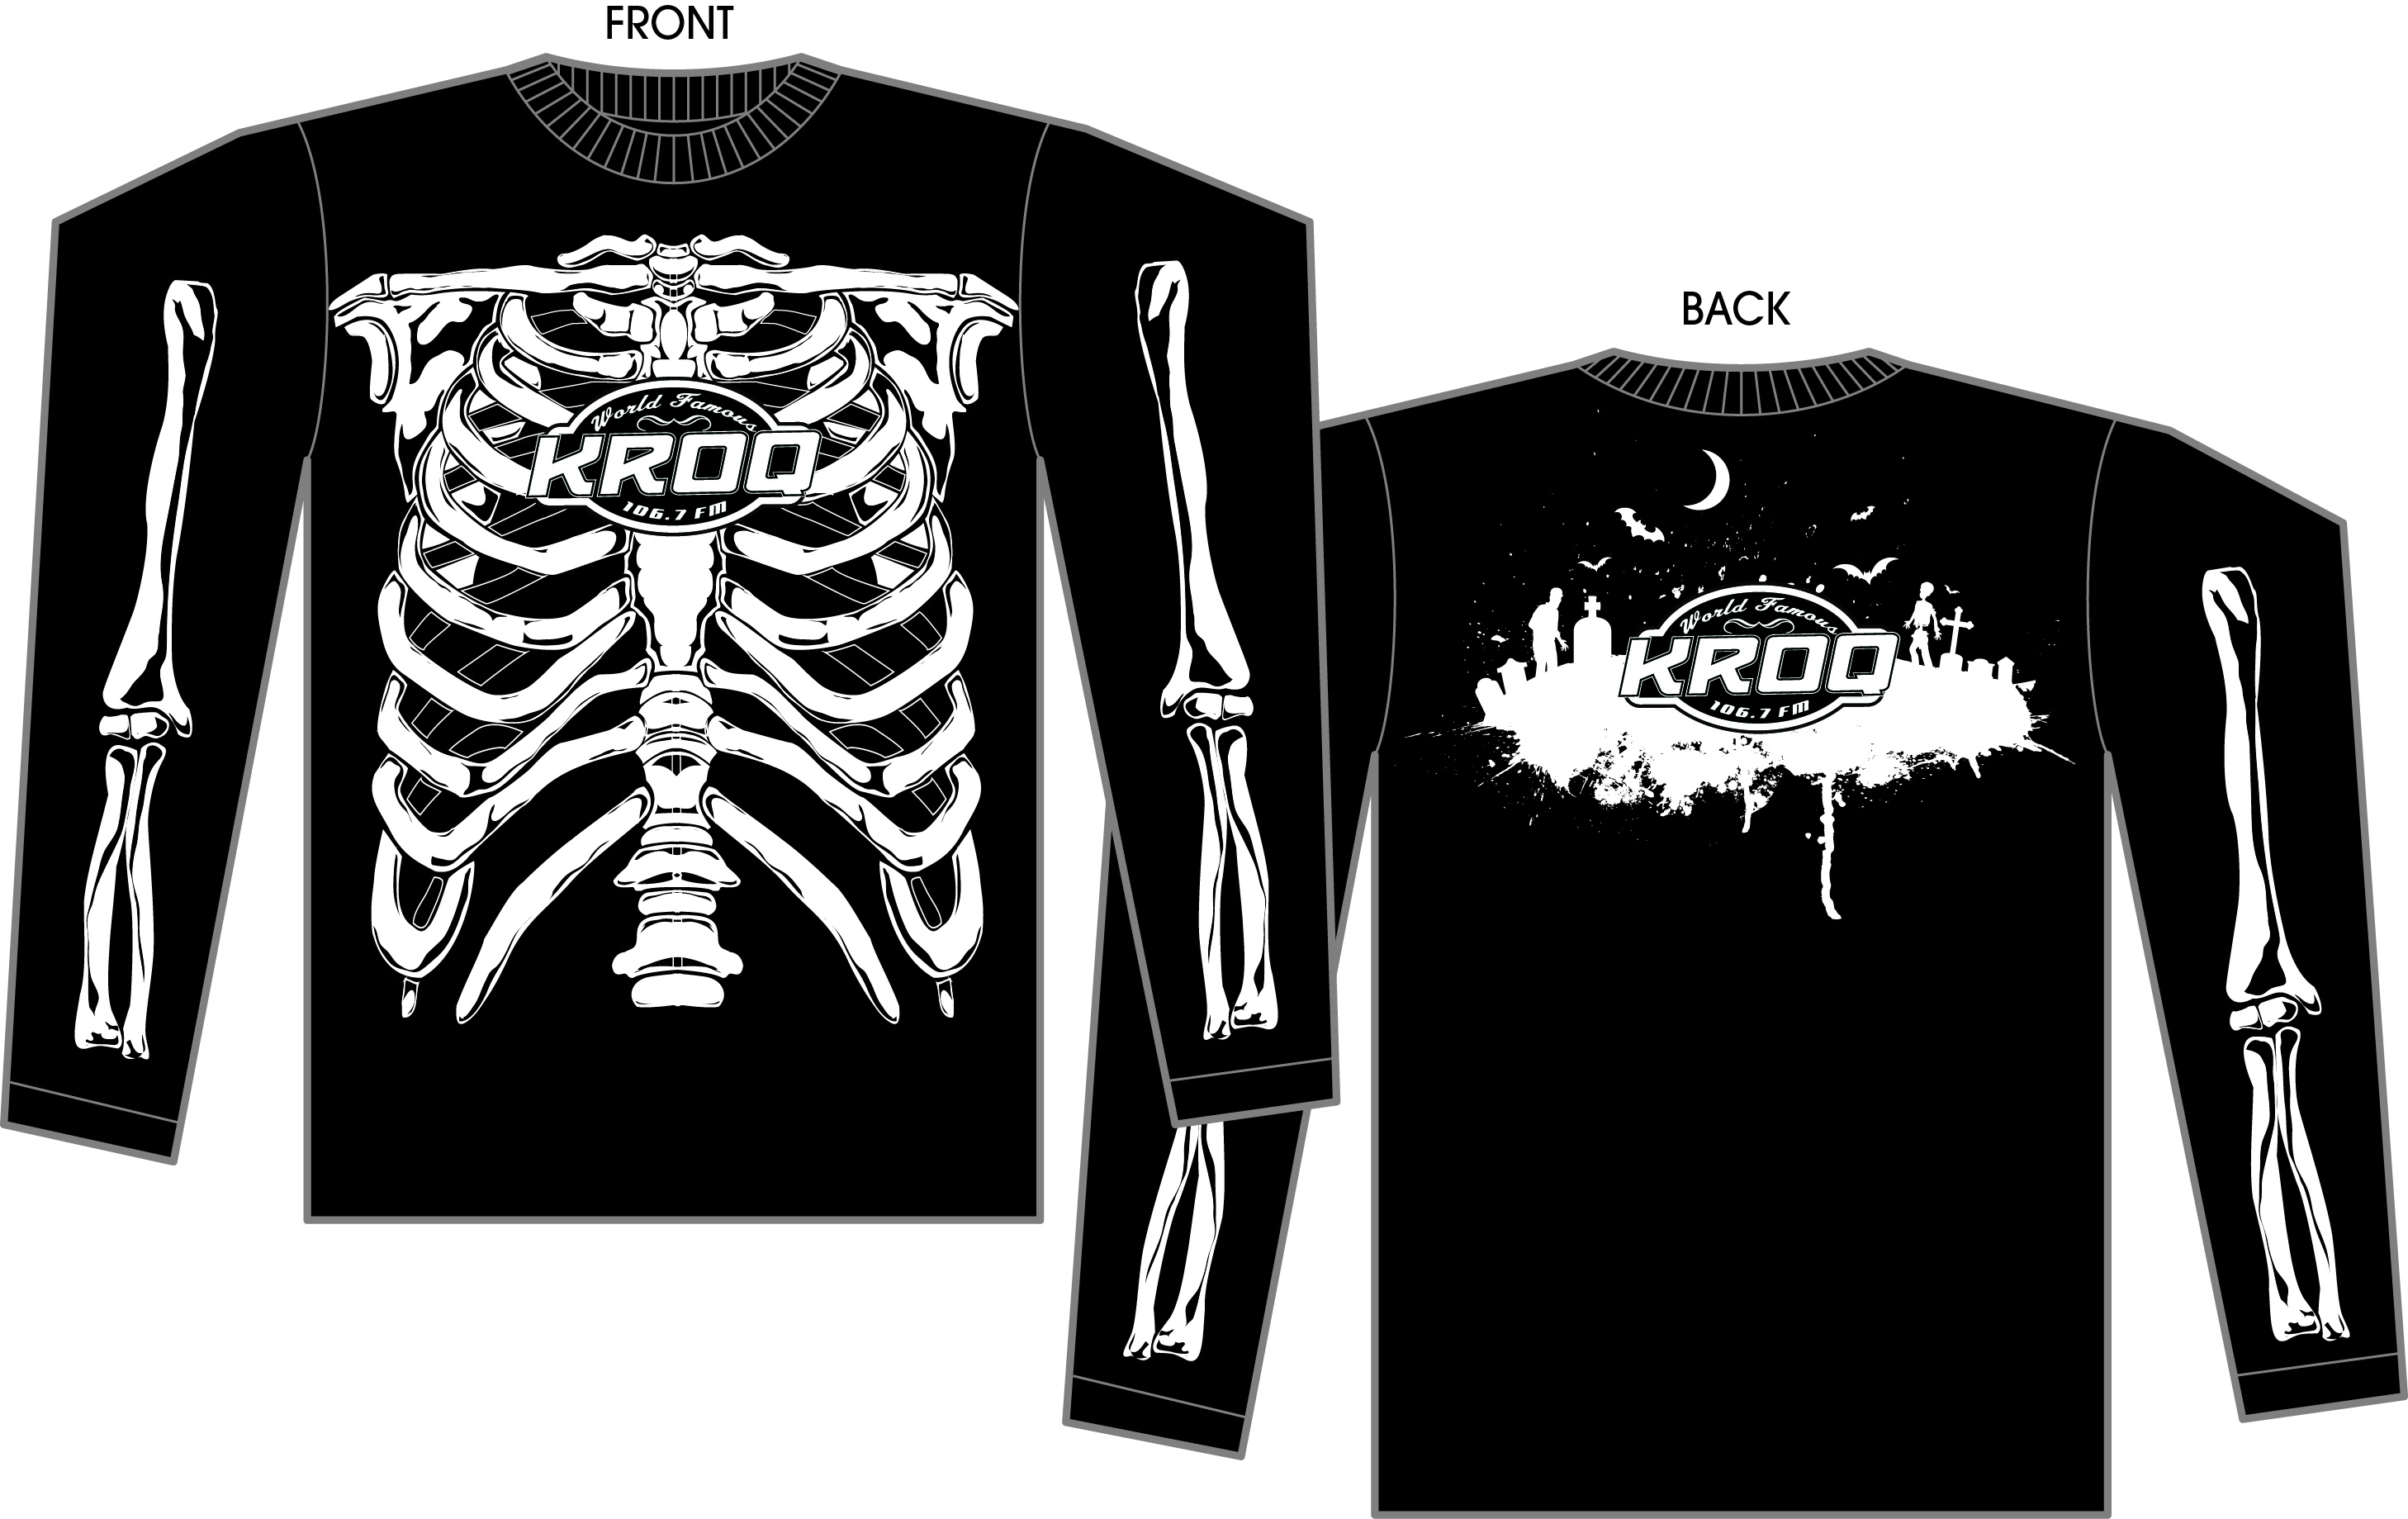 141017-KROQ-SKELETON-CREW-shirt-2.jpg